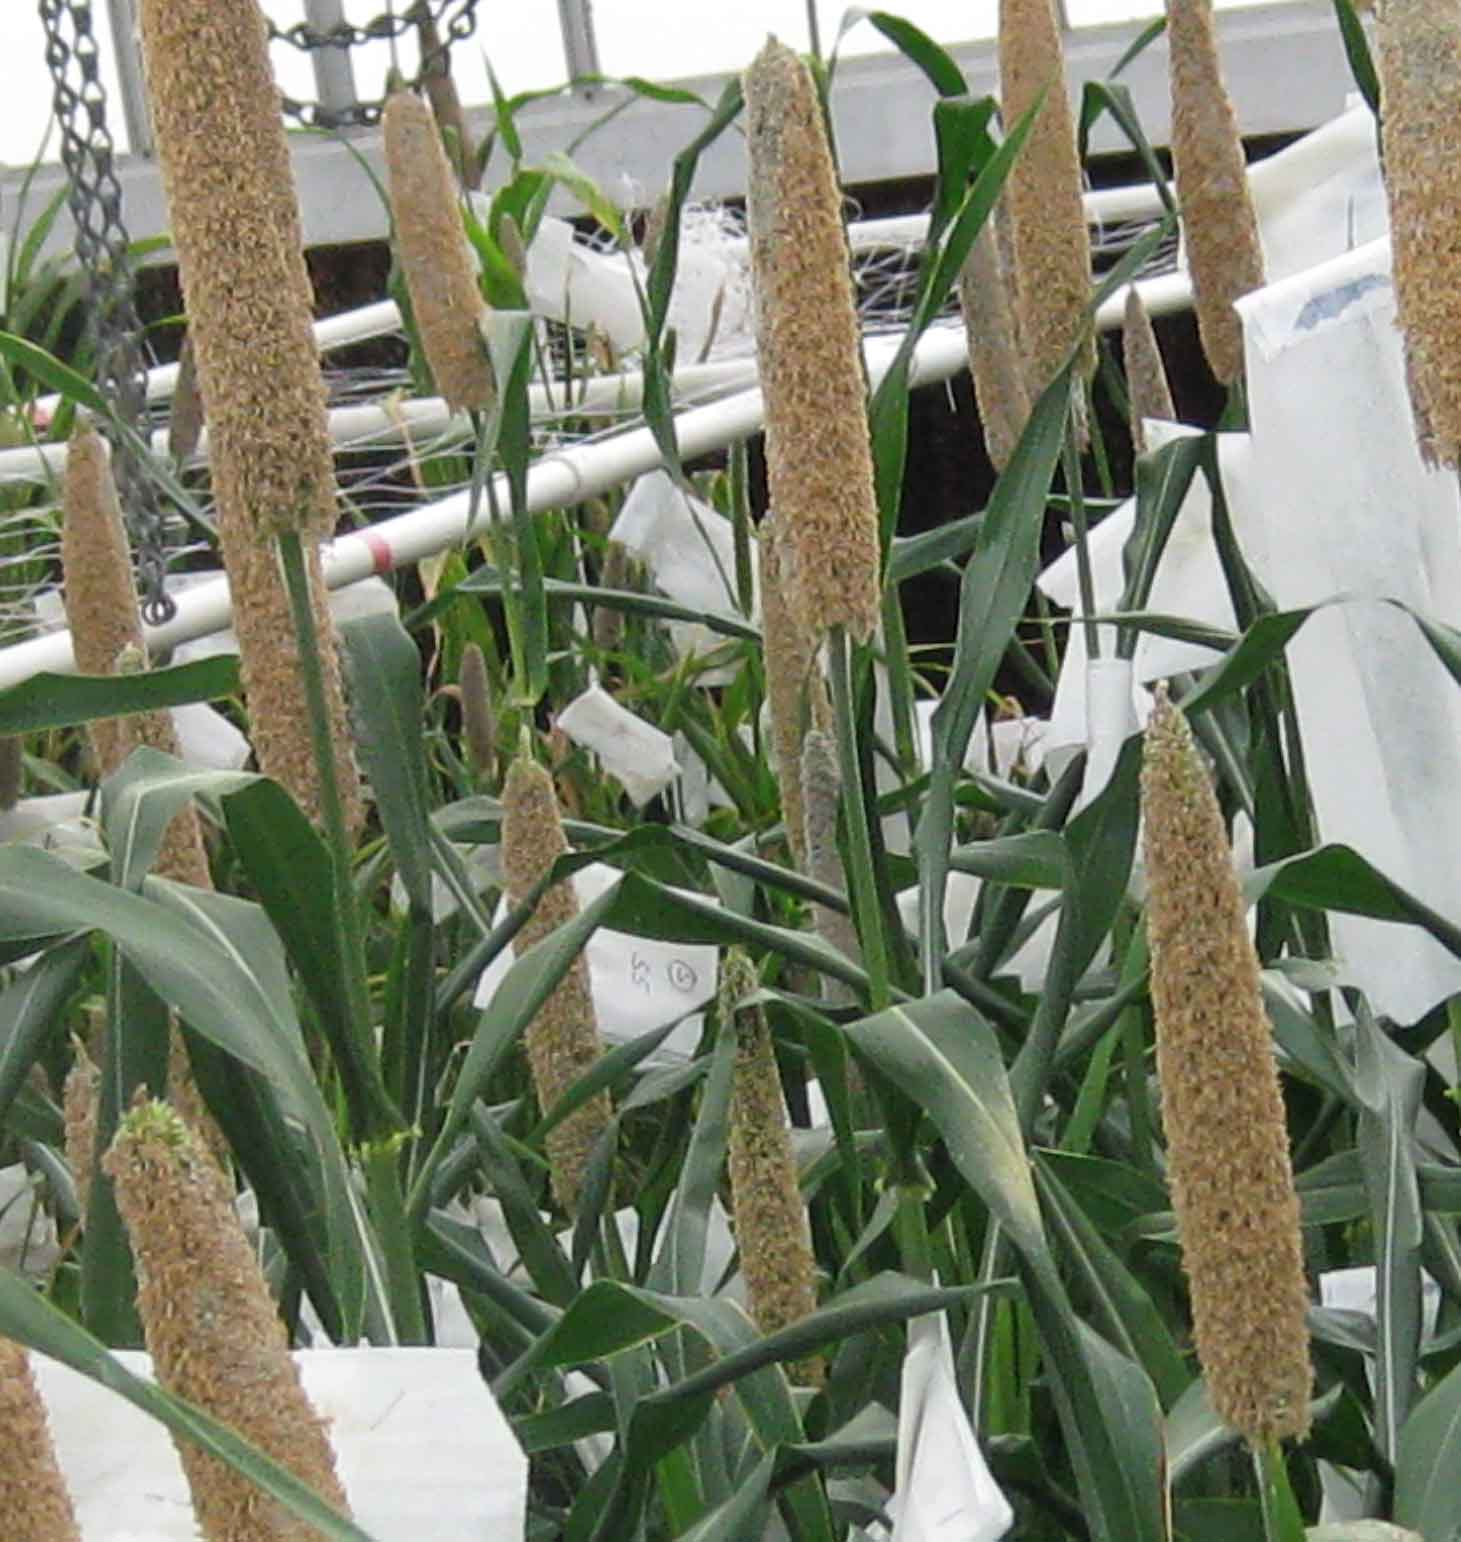 UGA geneticist Katrien Devos and her Ph.D. student Rajiv K. Parvathaneni identified the gene in dwarf pearl millet that leads to its short stature. It's the first gene identified with a specific trait in the drought-hardy grain.